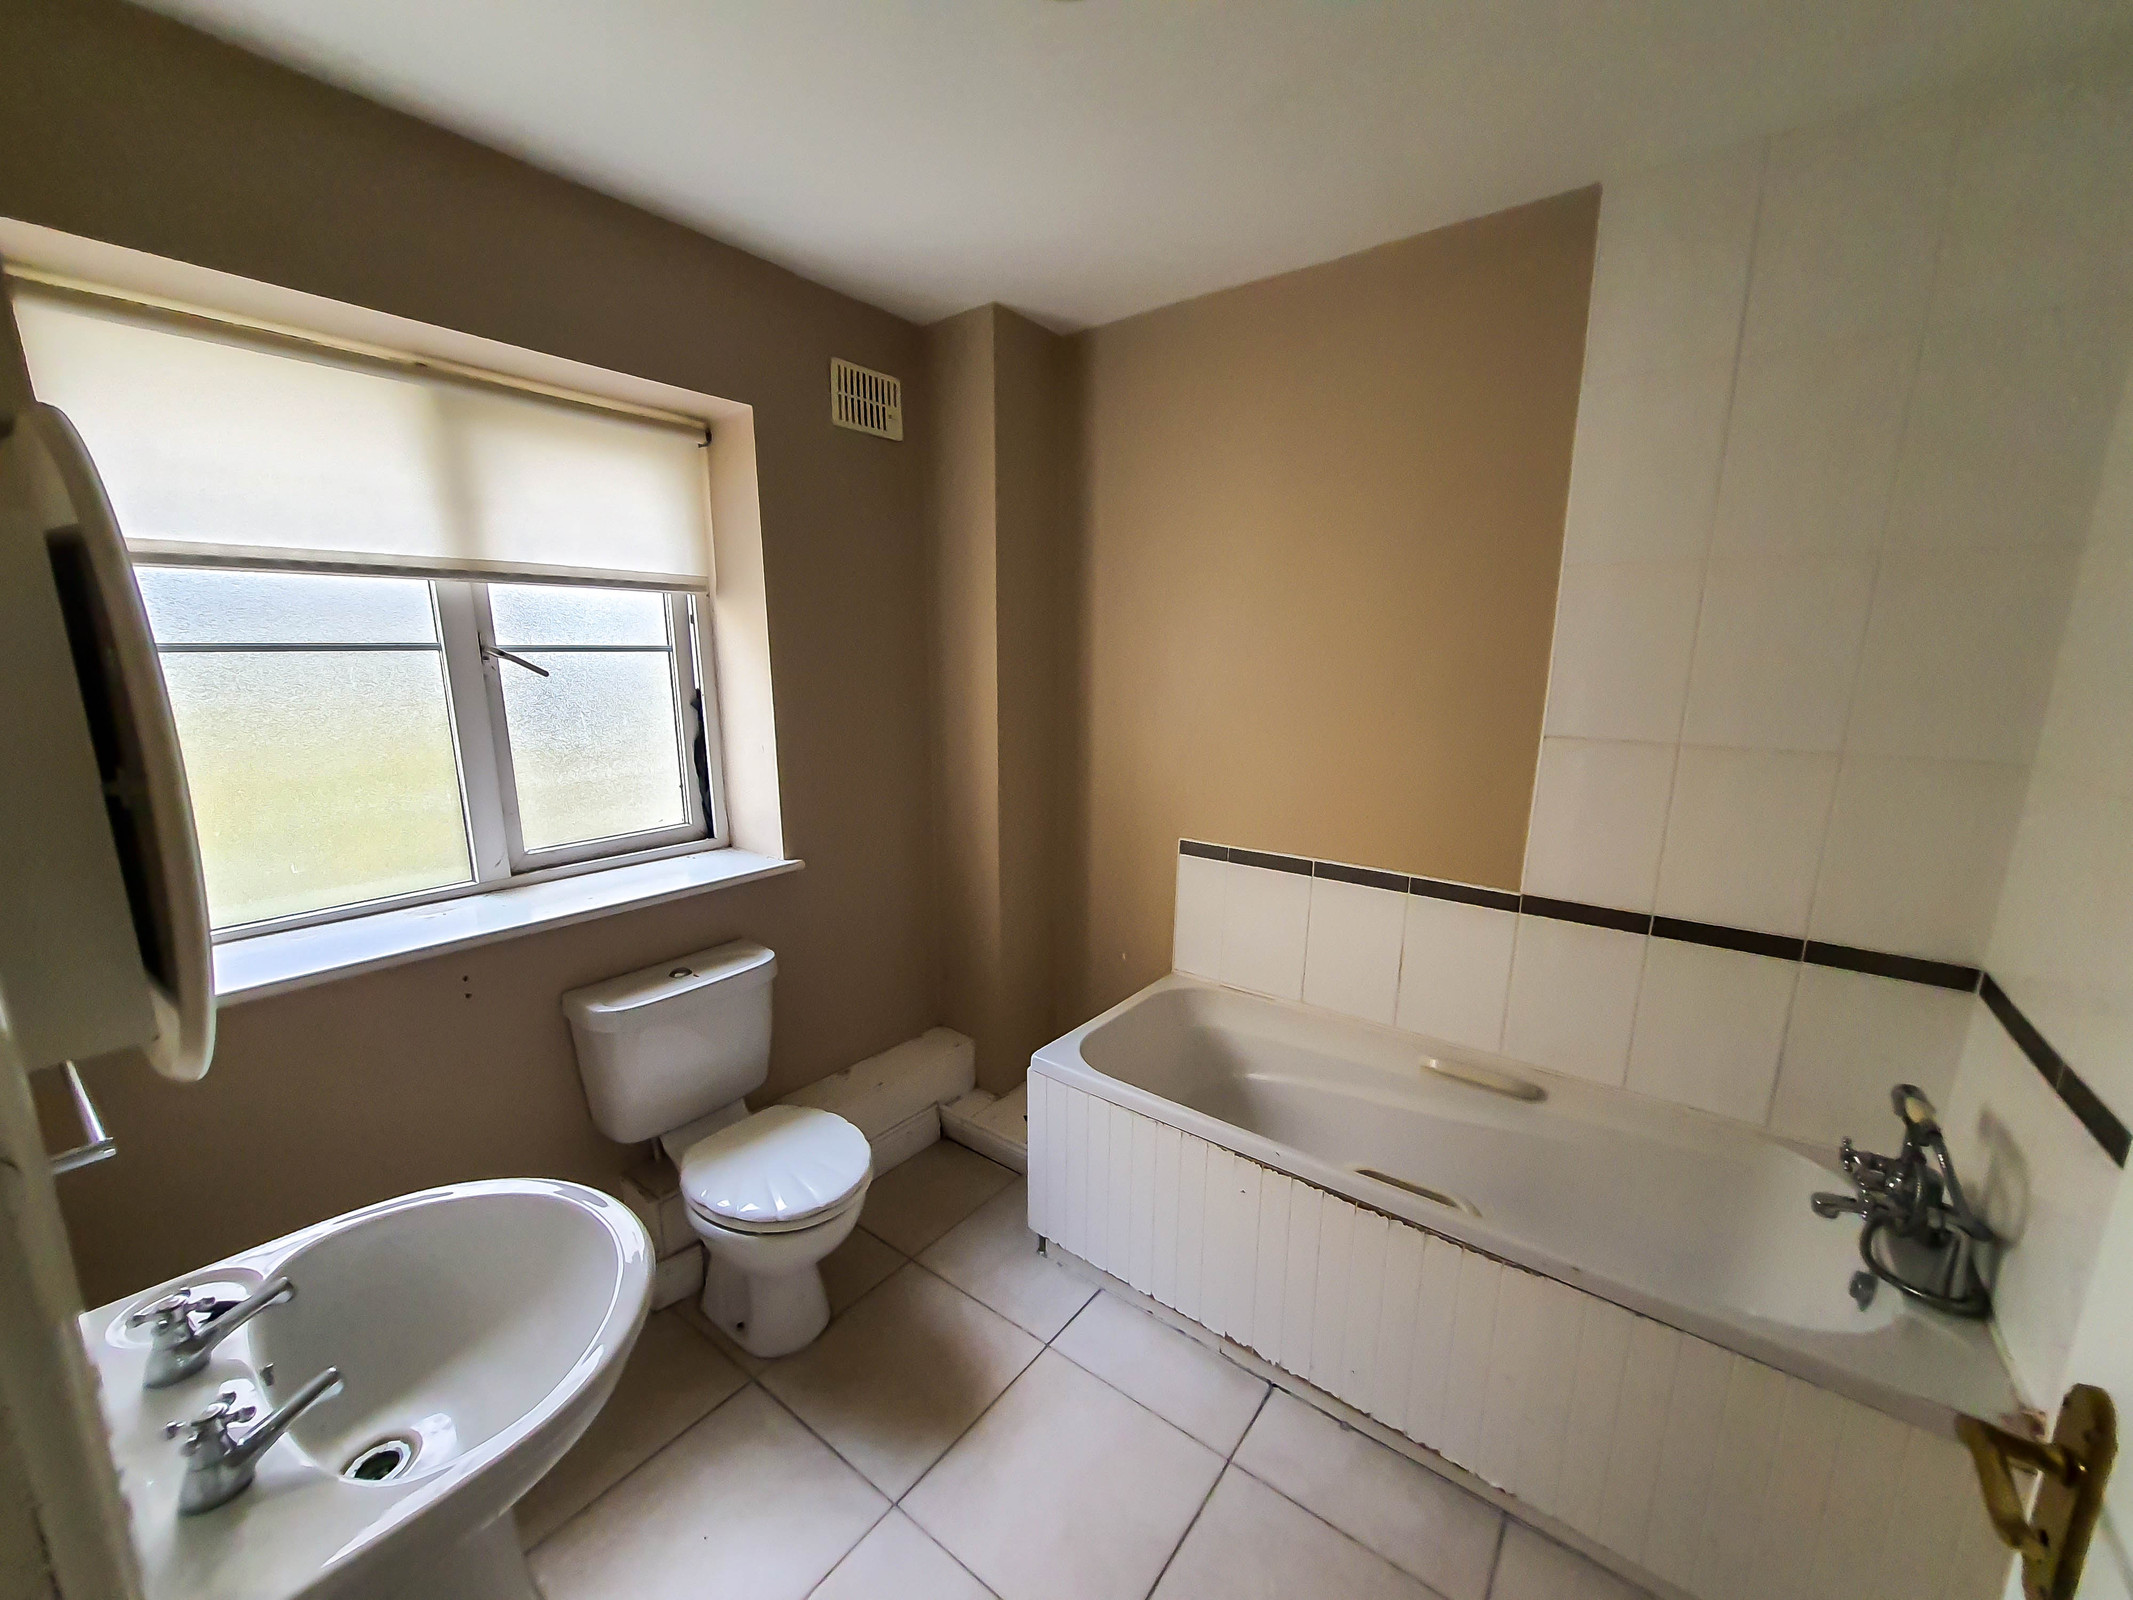 Apartment 54, Trimleston, Balbriggan, Co. Dublin